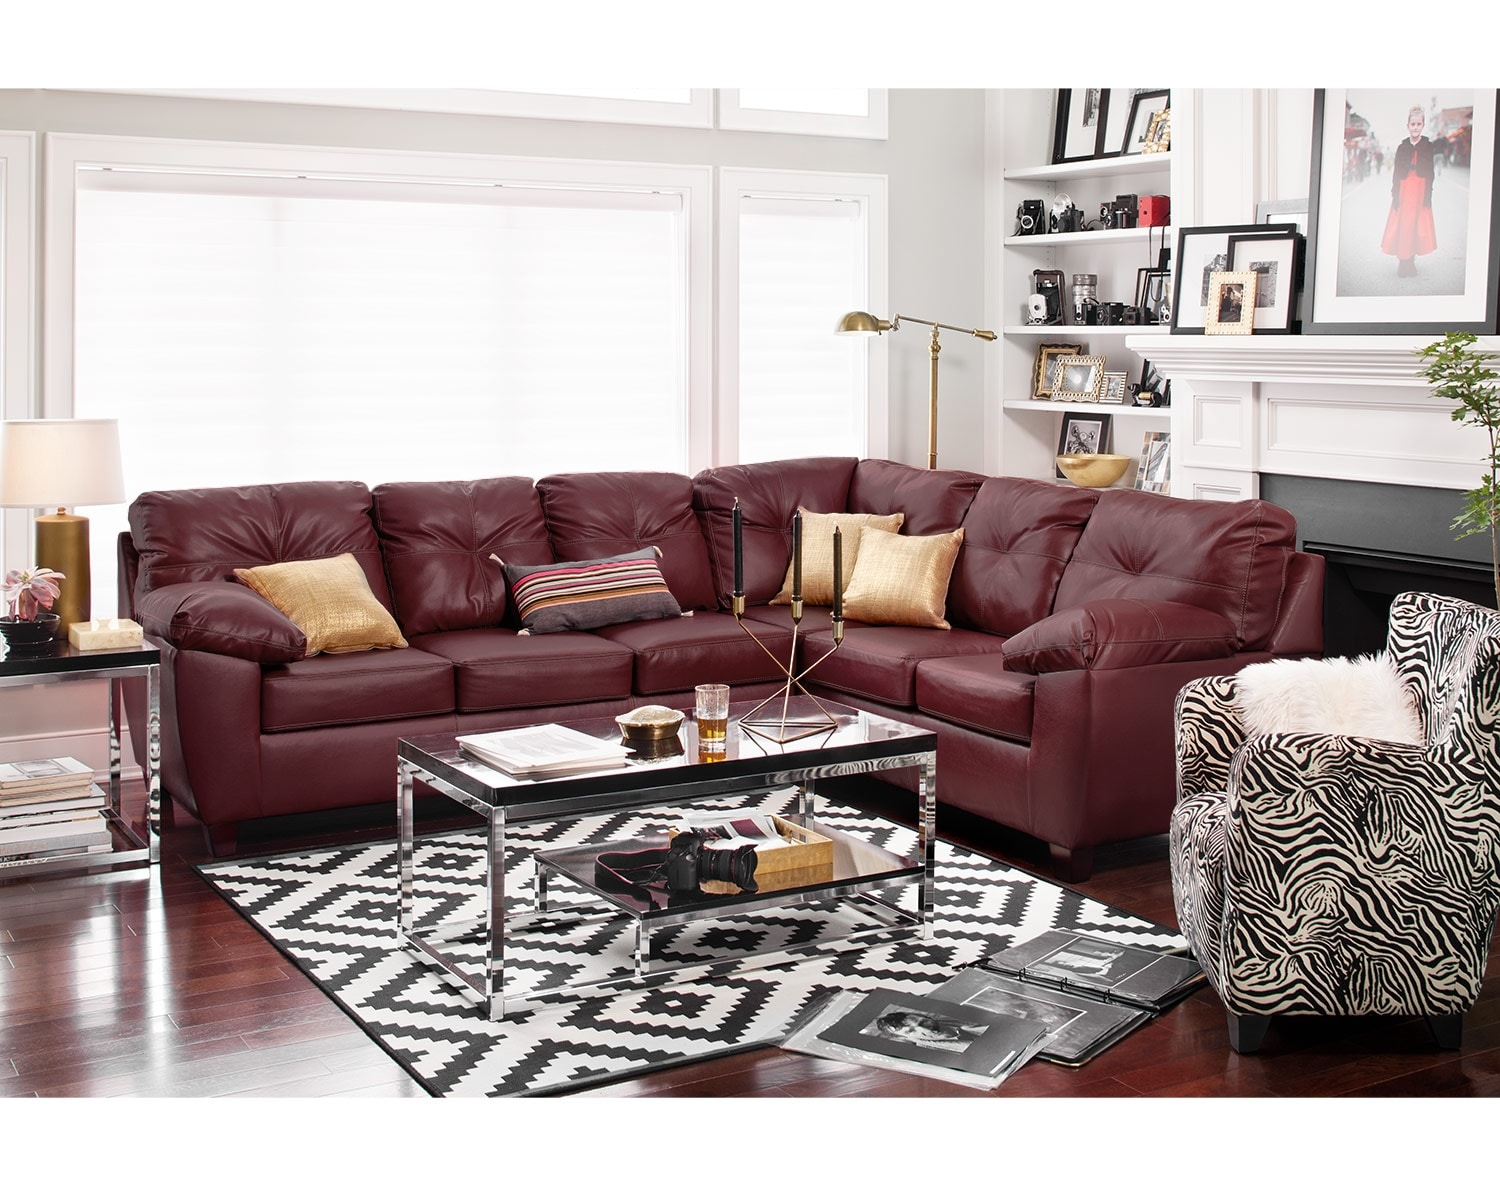 The Rialto Cardinal Sectional Living Room